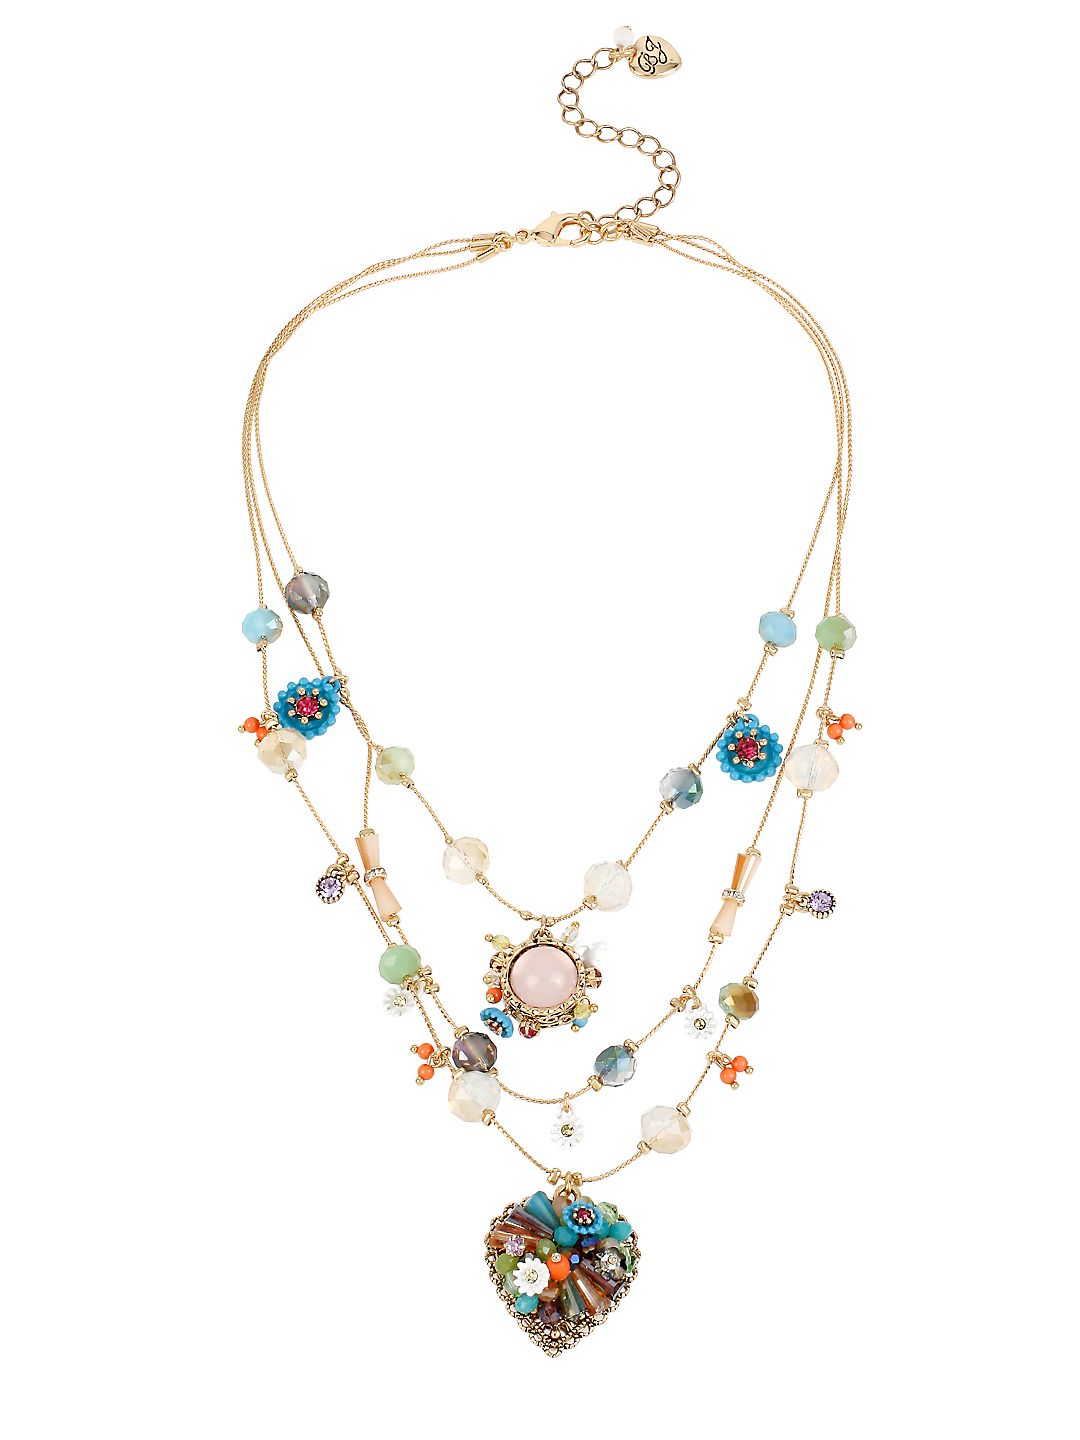 Weave and Sew Woven Mixed Multi-Colored Bead and Flower Heart Illusion Necklace